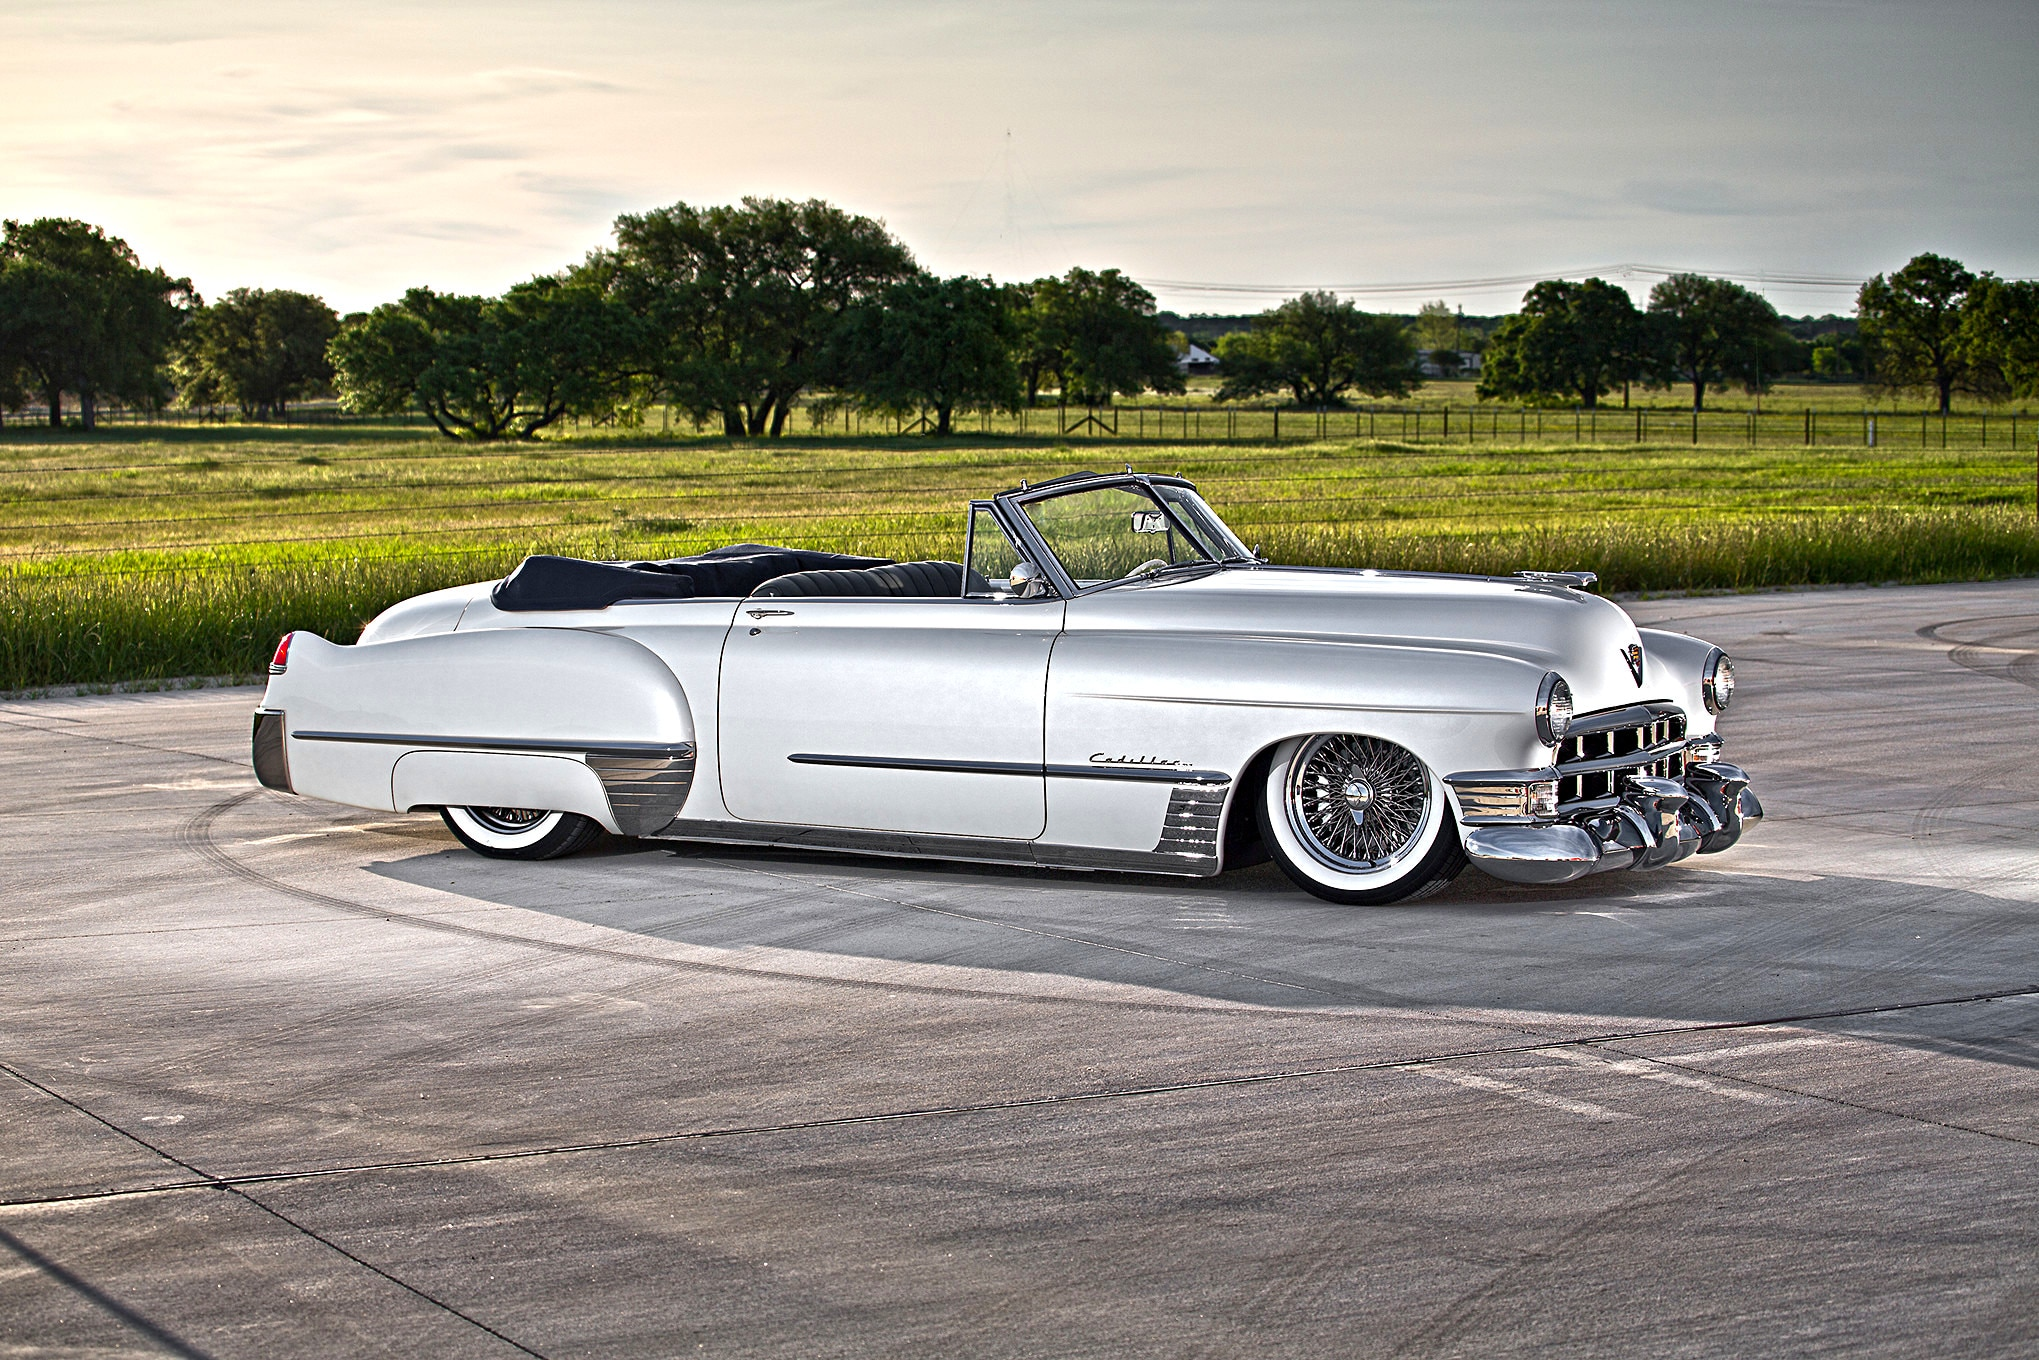 1949-cadillac-convertible-supercharged-lsx-right-profile